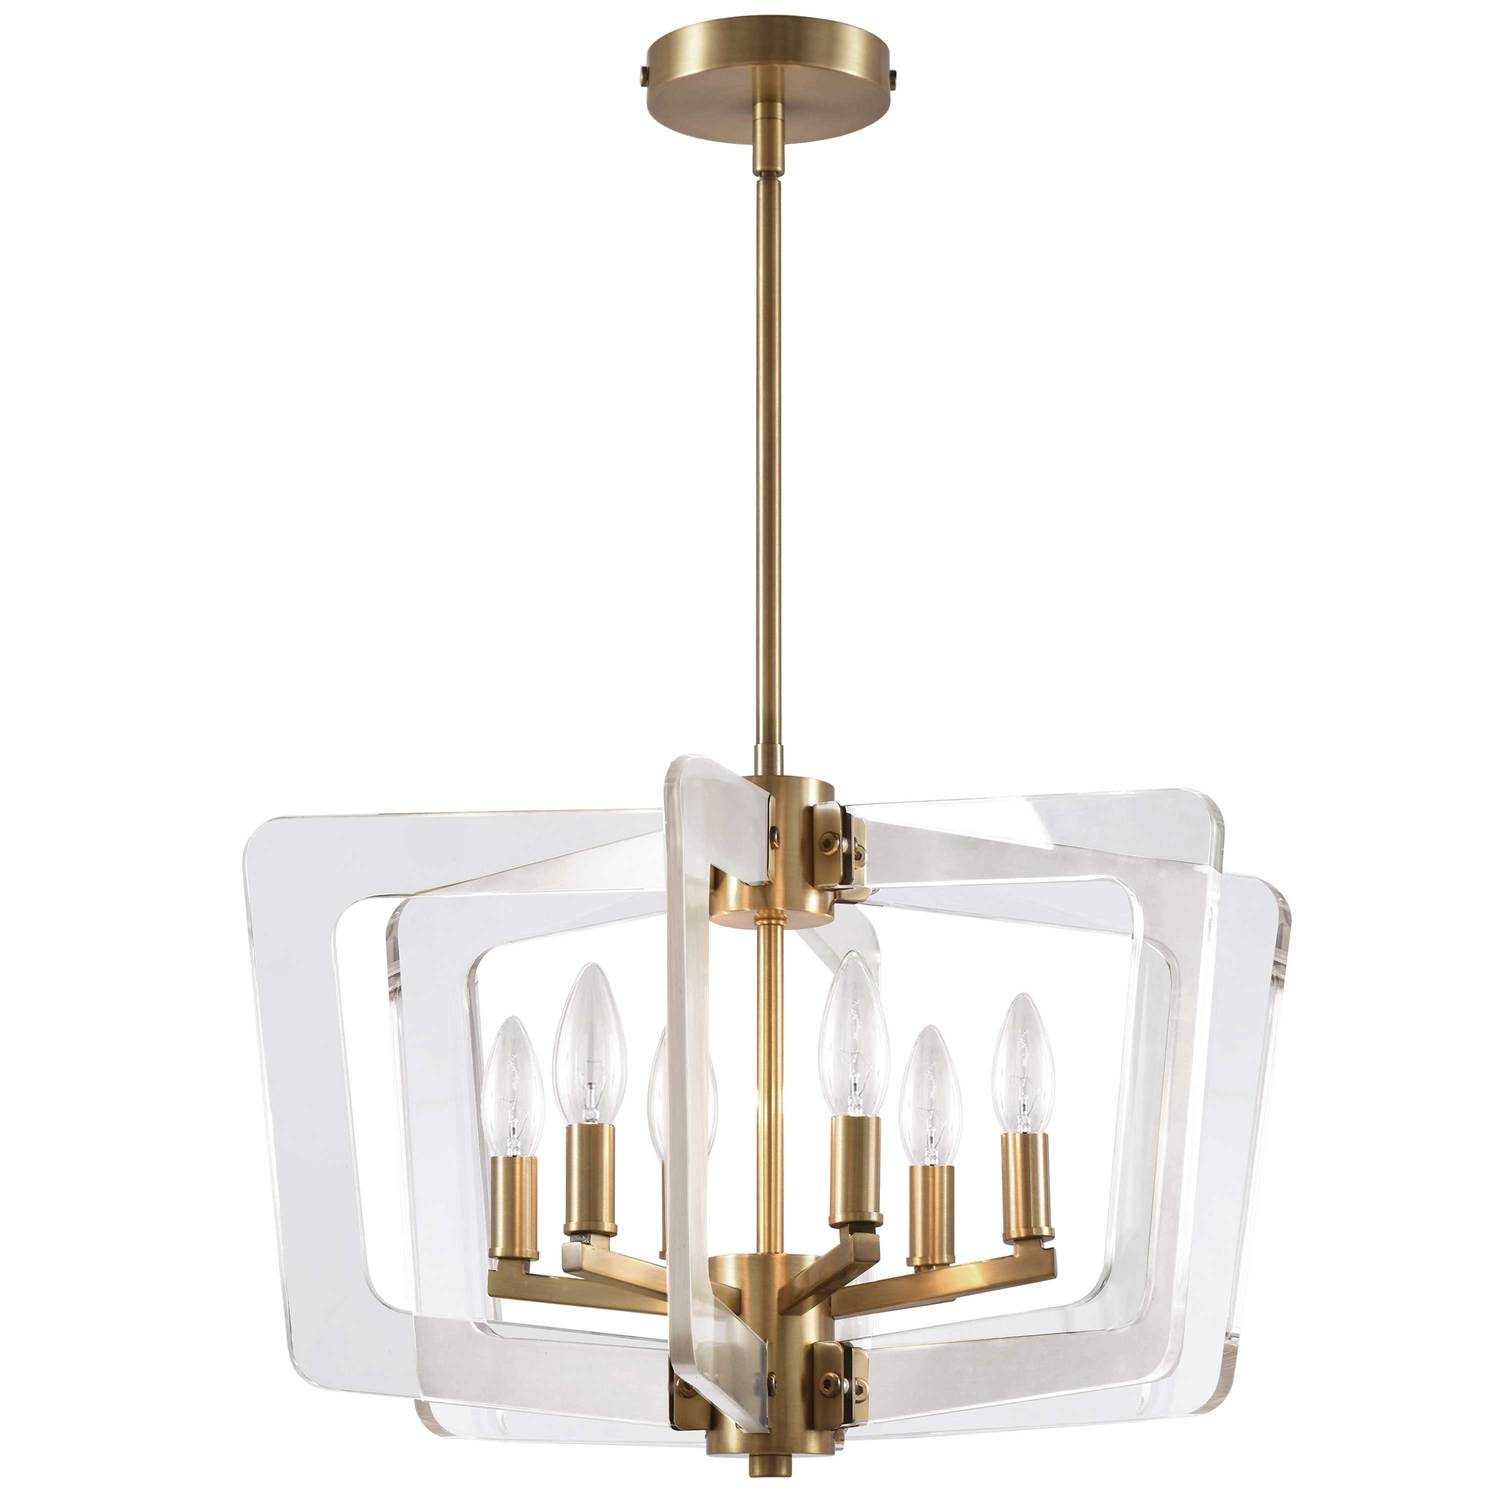 6LT Incan Chandelier,Aged Brass, Acrylic Arms